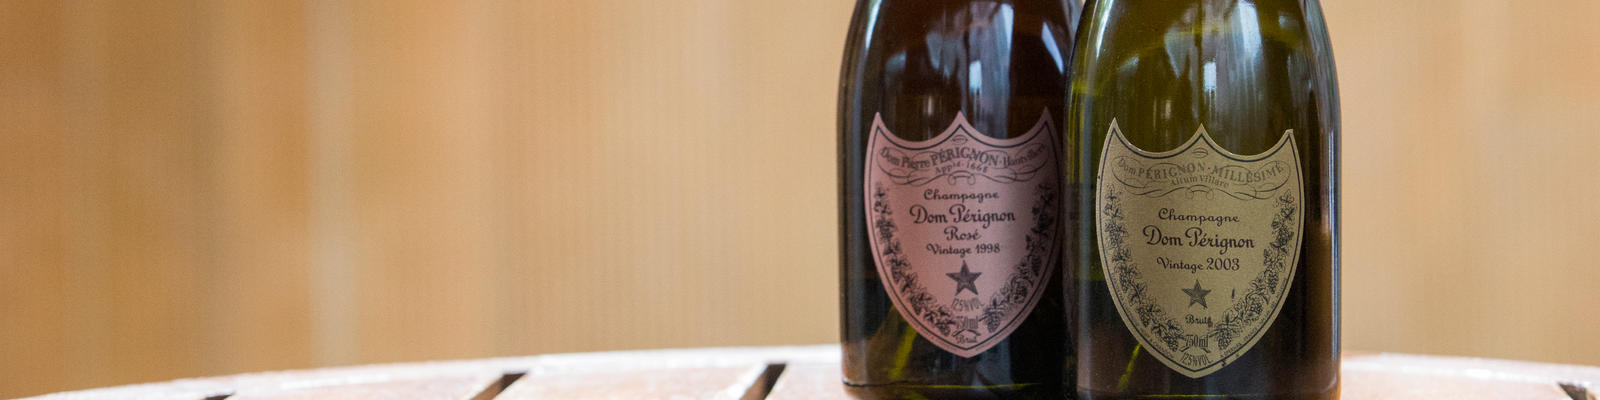 Dom Perignon (Photo: GYG Studio/Shutterstock)